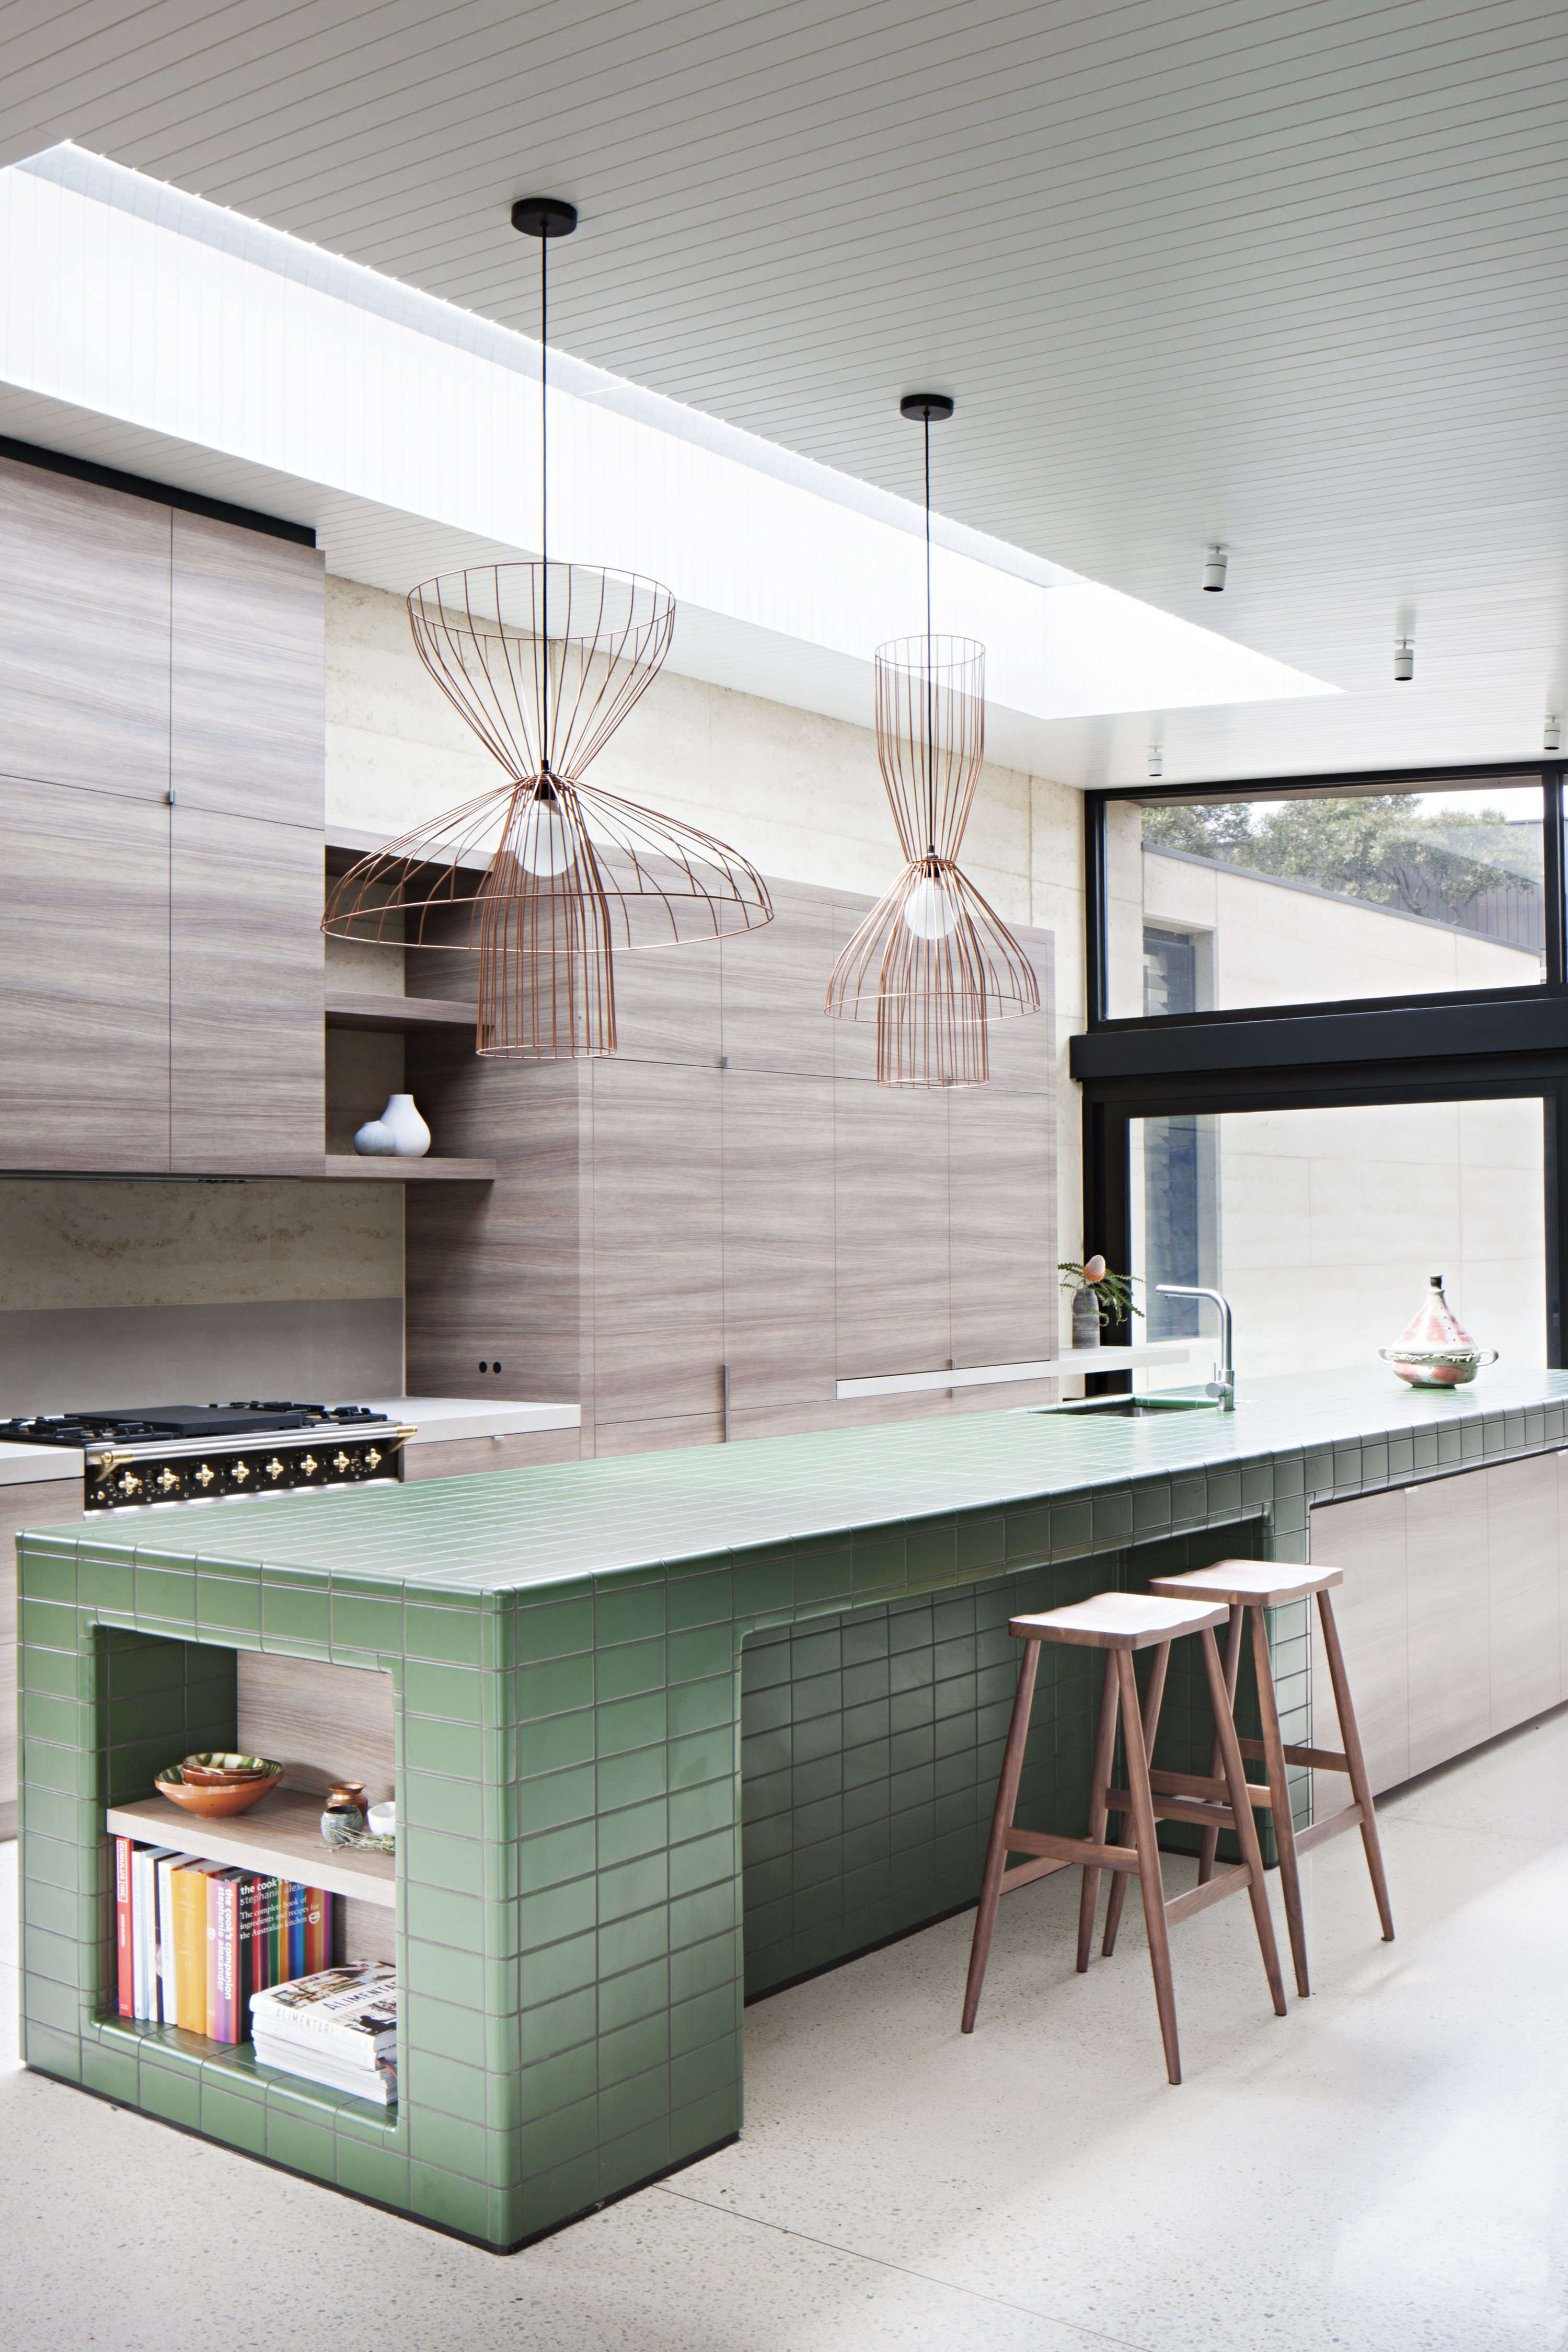 Tiled kitchen island in contemporary wood kitchen at Layer House by ...